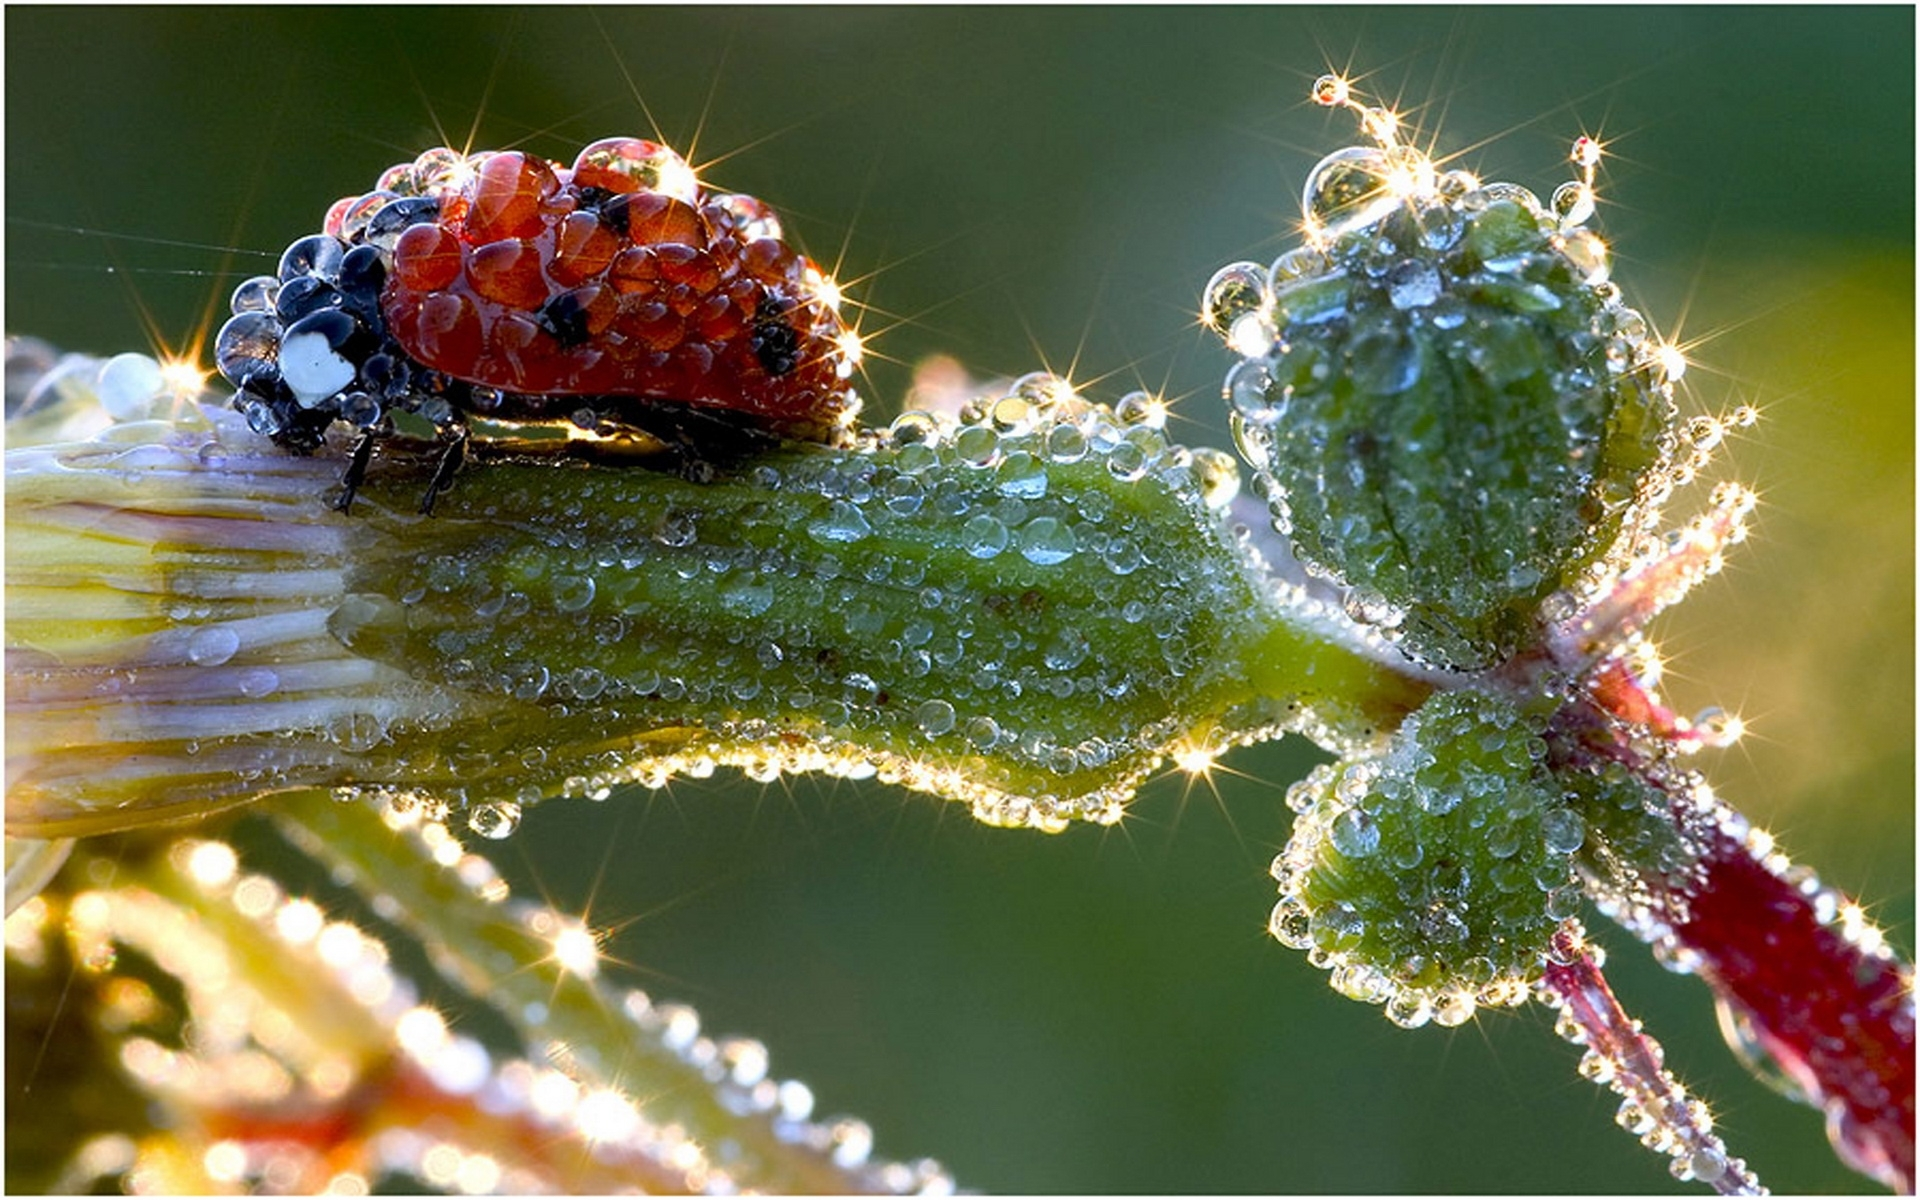 26009 download wallpaper Insects, Ladybugs, Drops screensavers and pictures for free